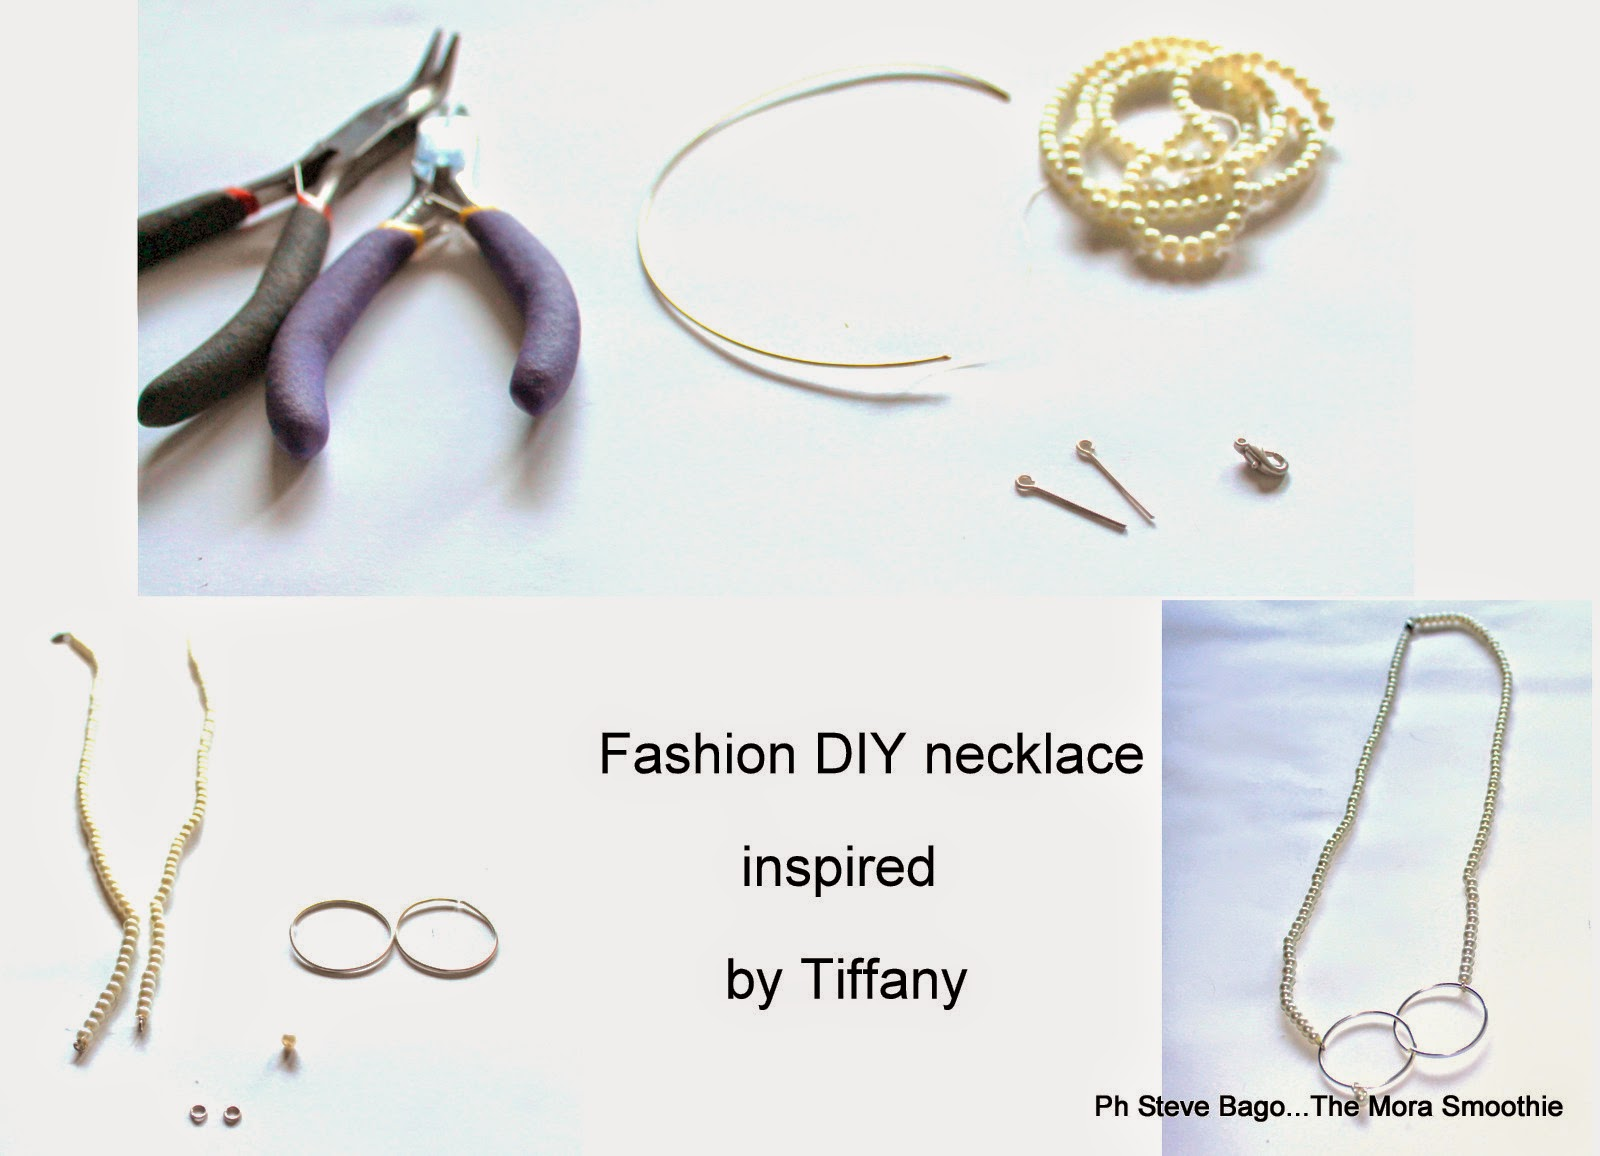 DIY, DIY necklace, DIY collana, tutorial, tutorial necklace, tutorial collana, collana fai da te, collana tiffany, necklace tiffany, DIY tiffany, themorasmoothie, fashion, fashionblog, fashionblogger, fashion DIY, craft, crafts, DIY project, diycraft, blogger, blogger italiana, fashionblogger italia, fashionblogger italiana, do it your self